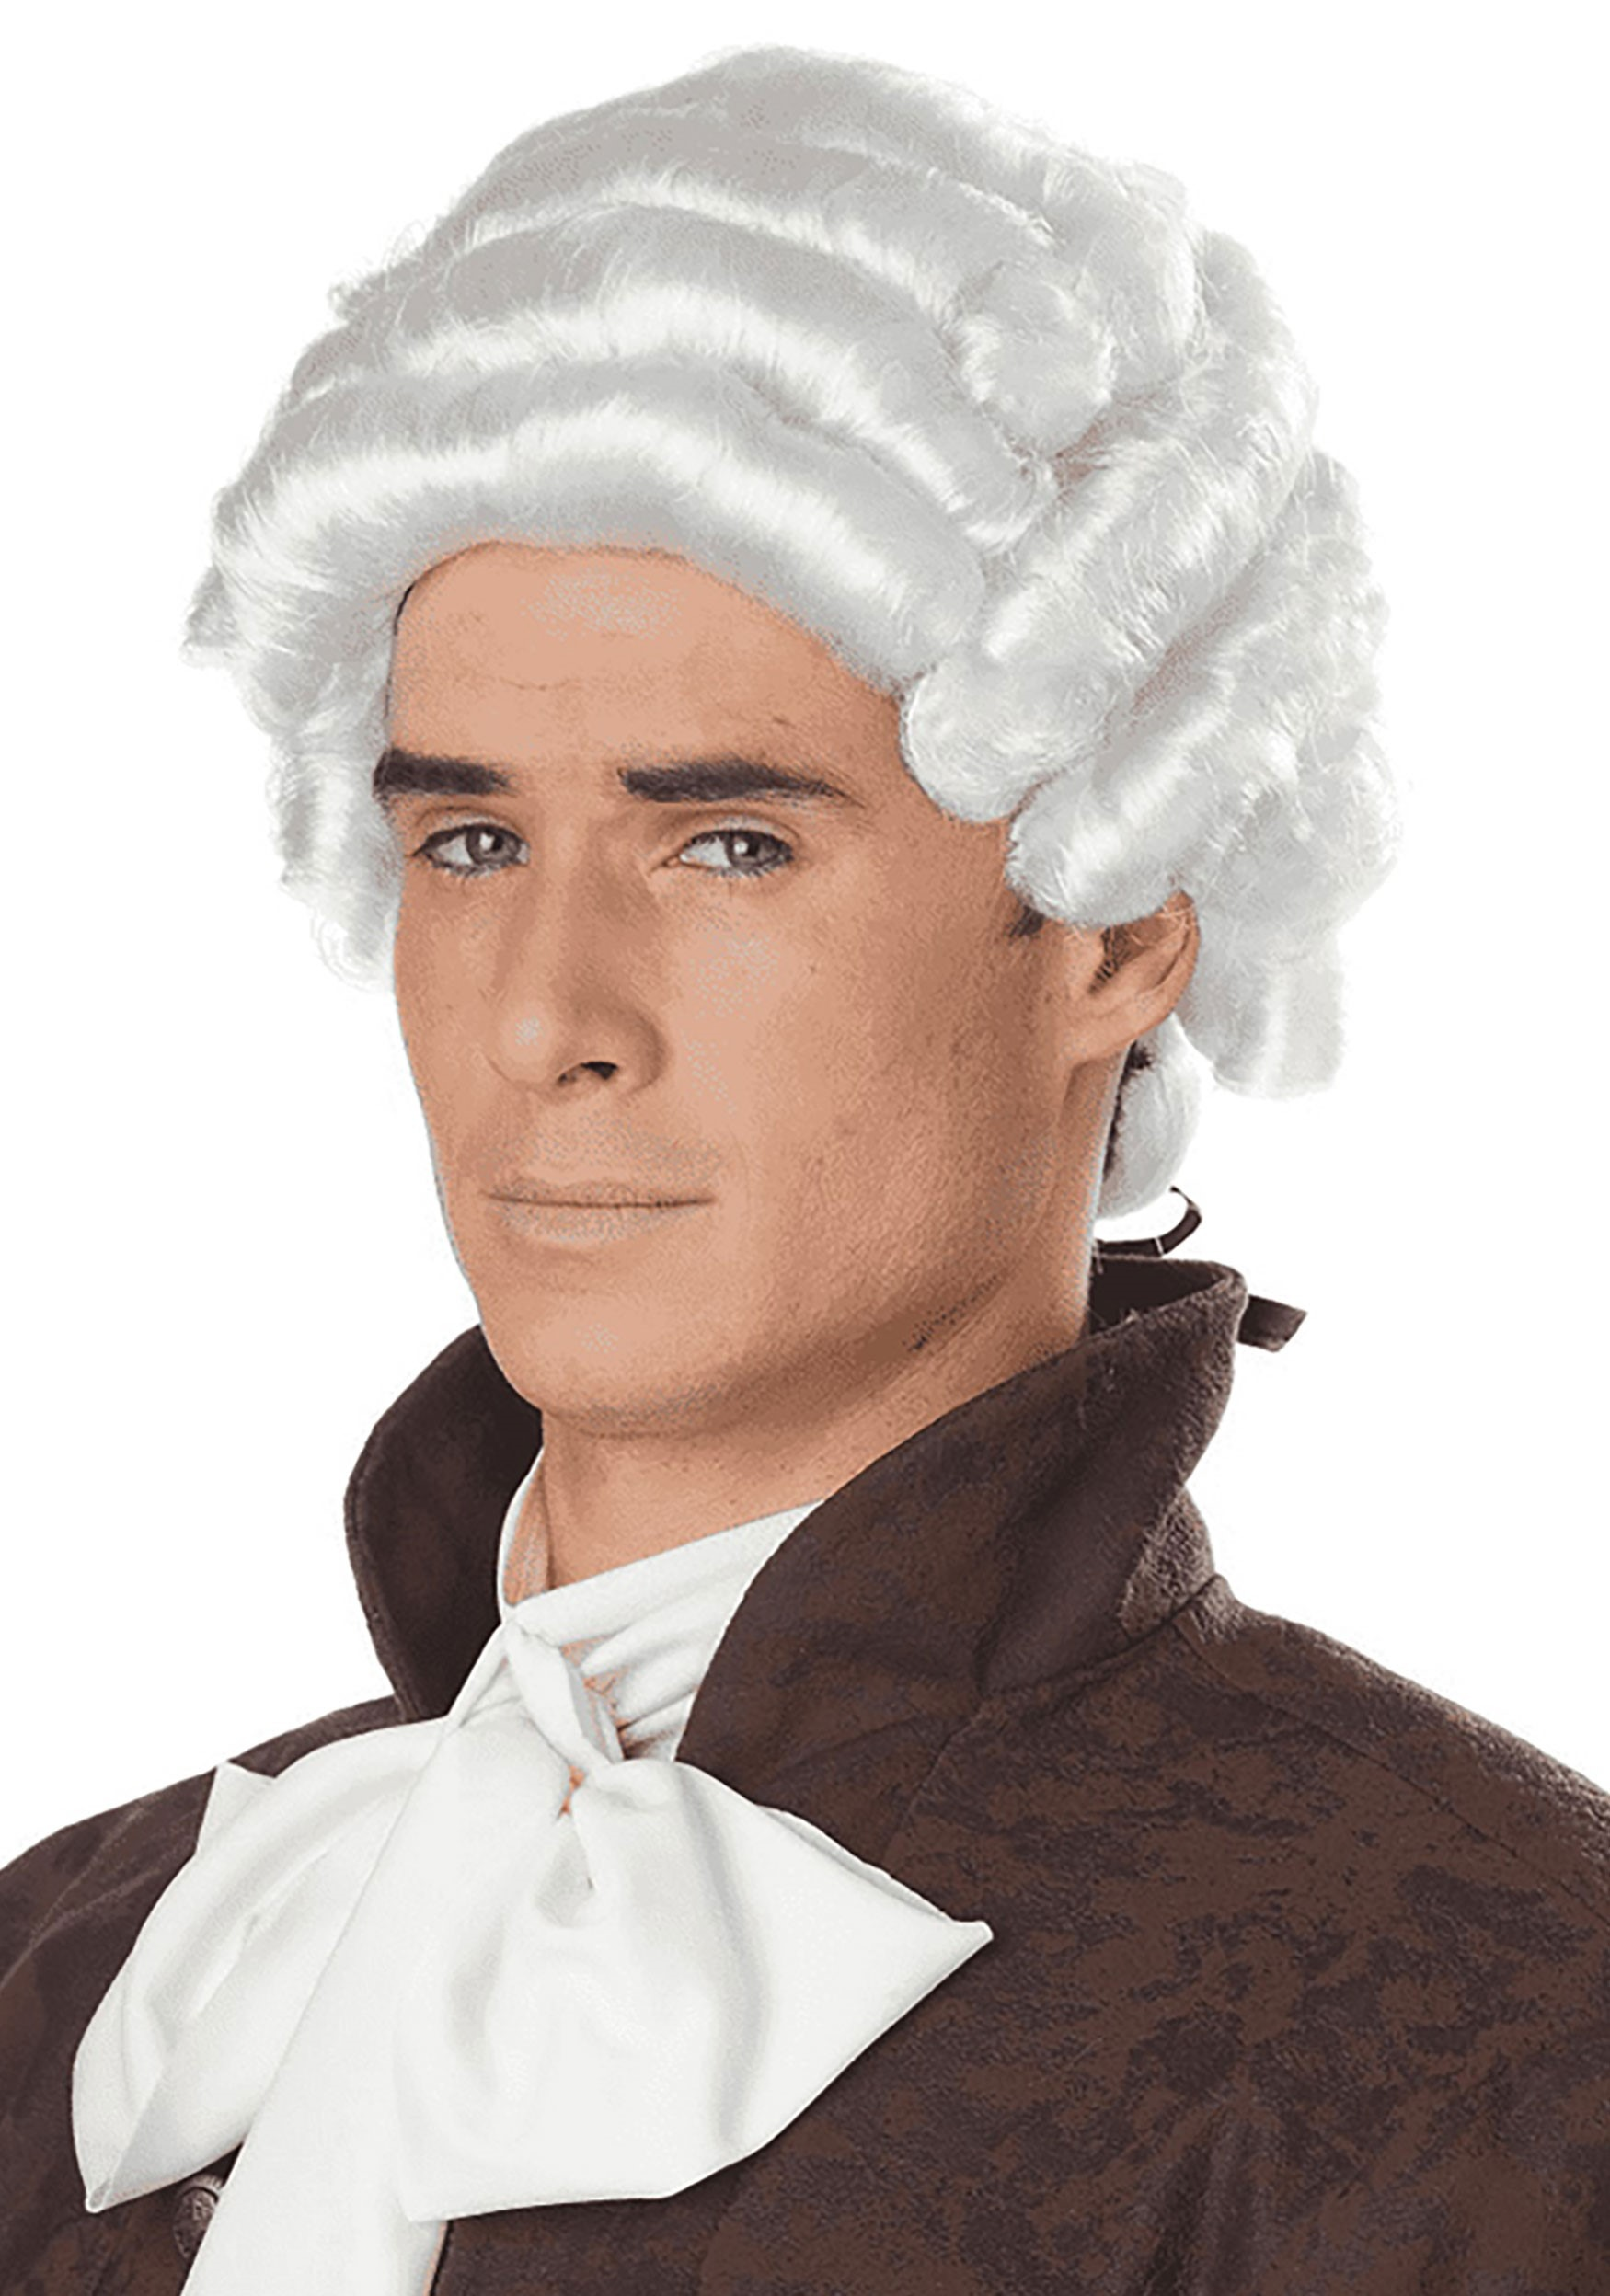 bfe74d68f1a0a1 Men's White Colonial Wig